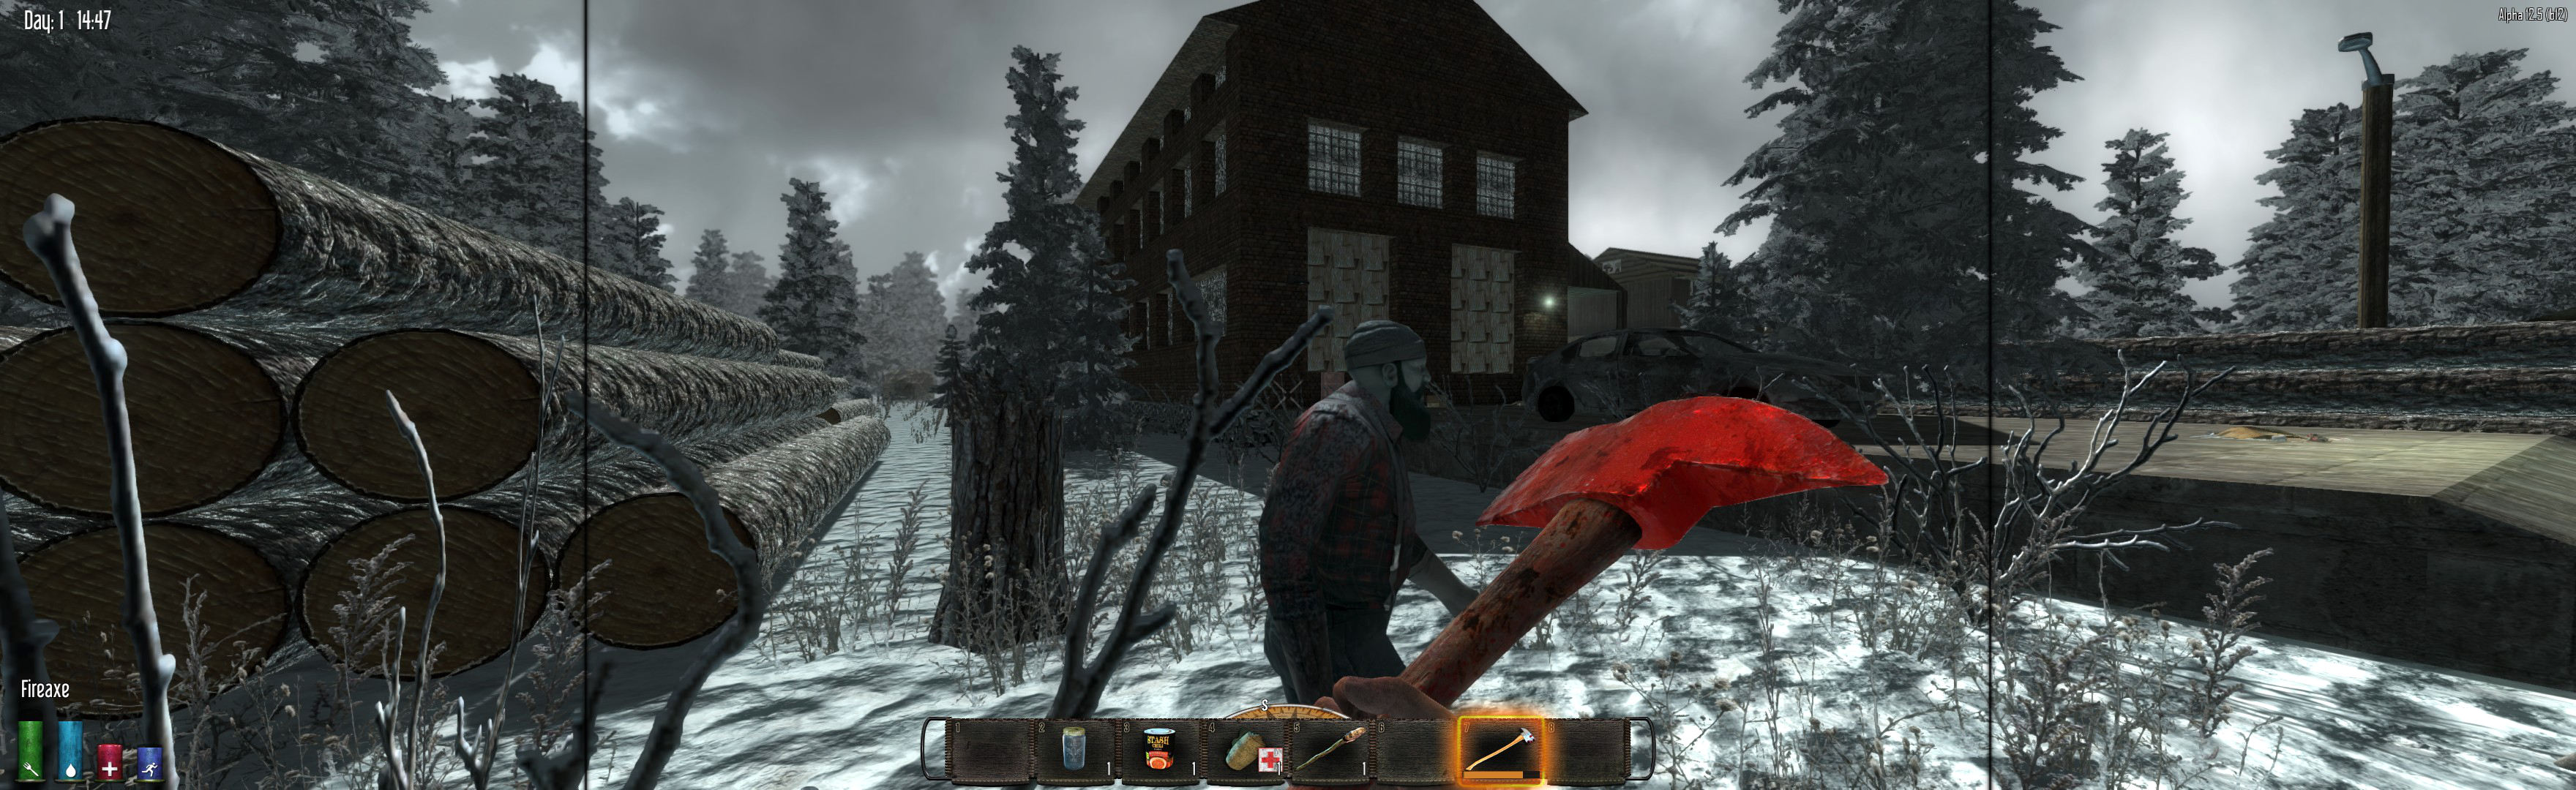 7 Days To Die 2013 Manual Plp Instructions Wsgf